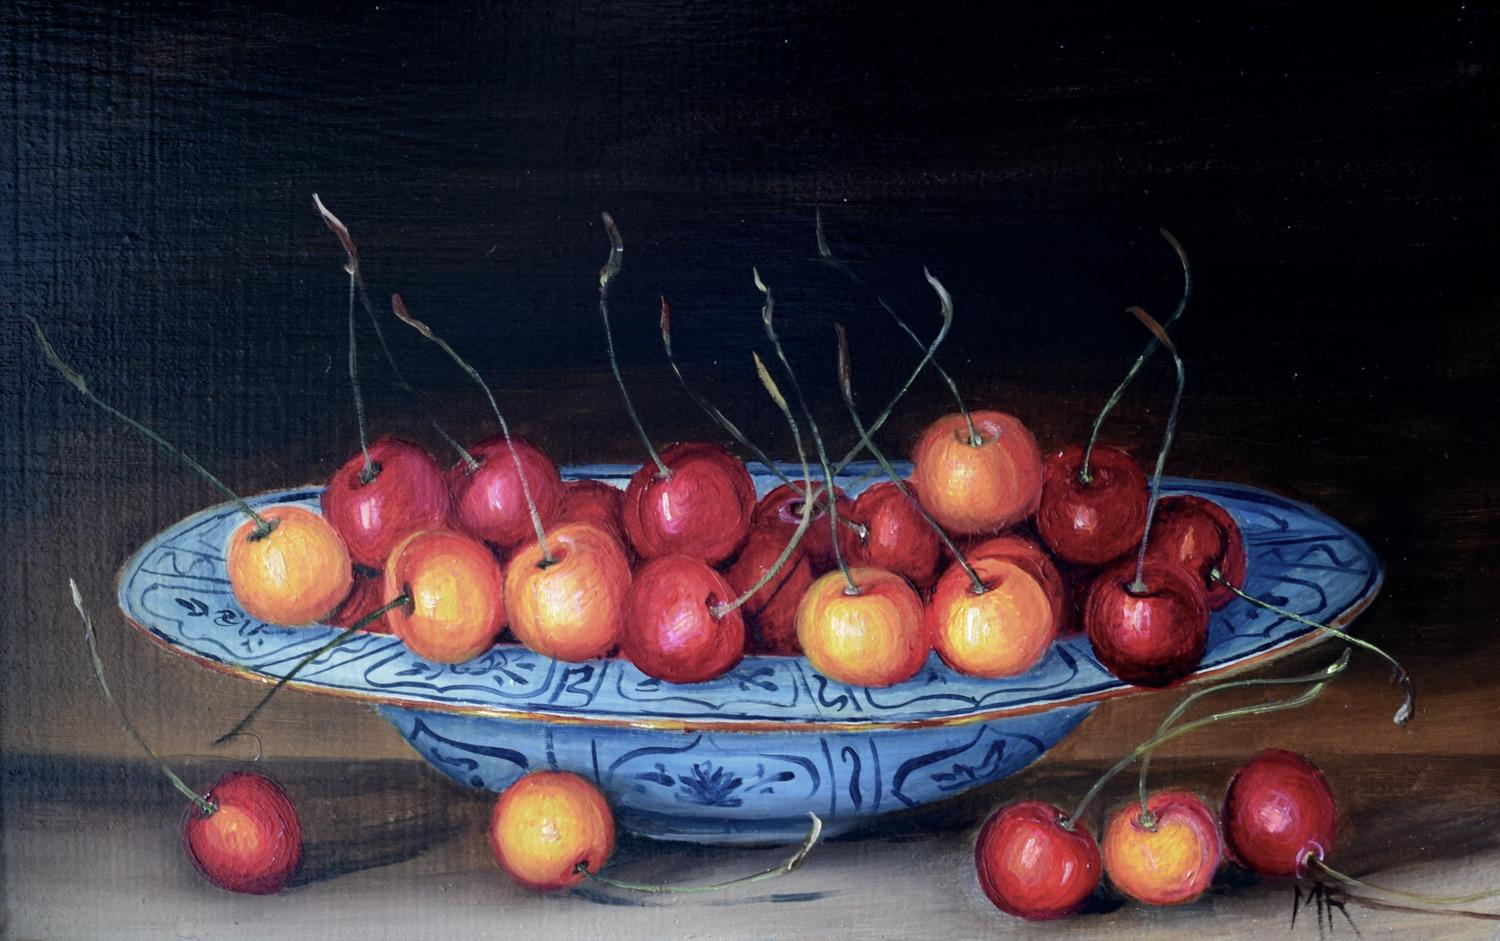 A plate of cherries